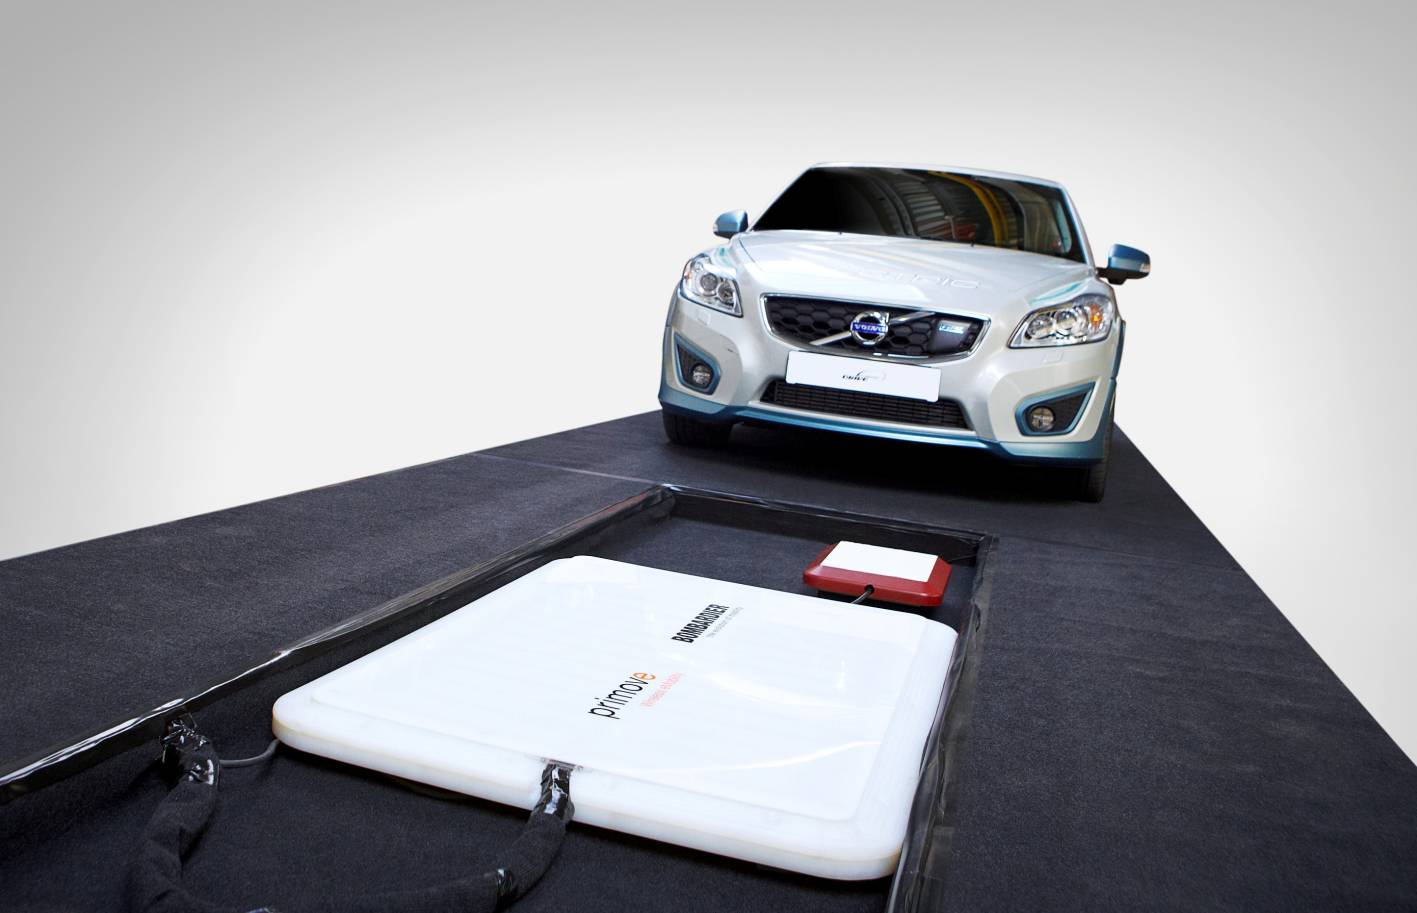 Volvo C30 Electric Tests Wireless Charging Technology